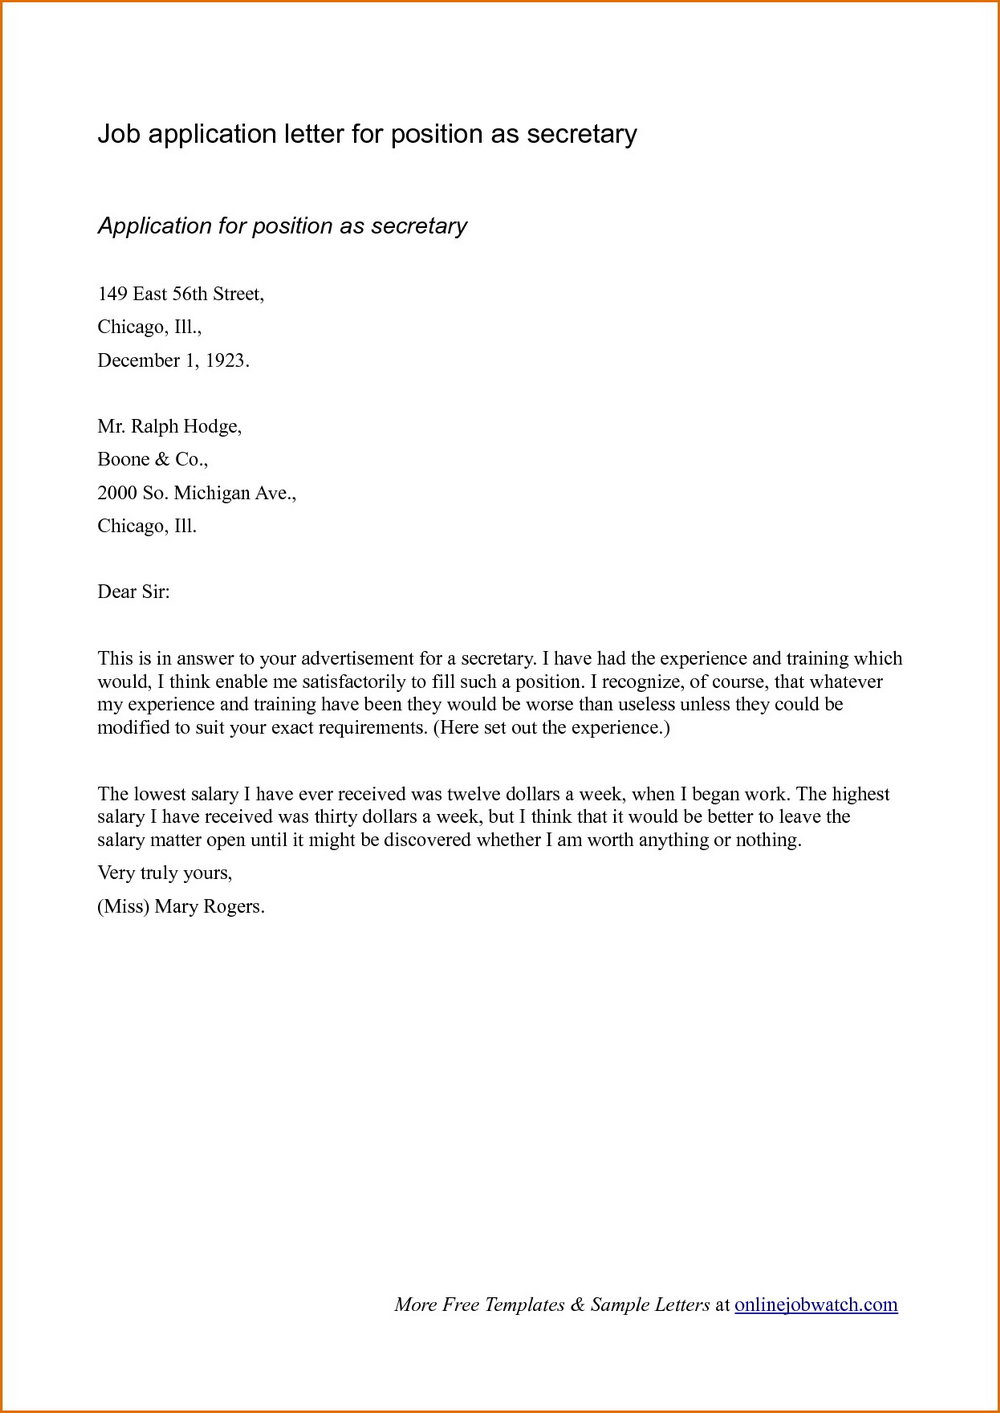 Sample Of Application Letter For Job Vacancy In Bank